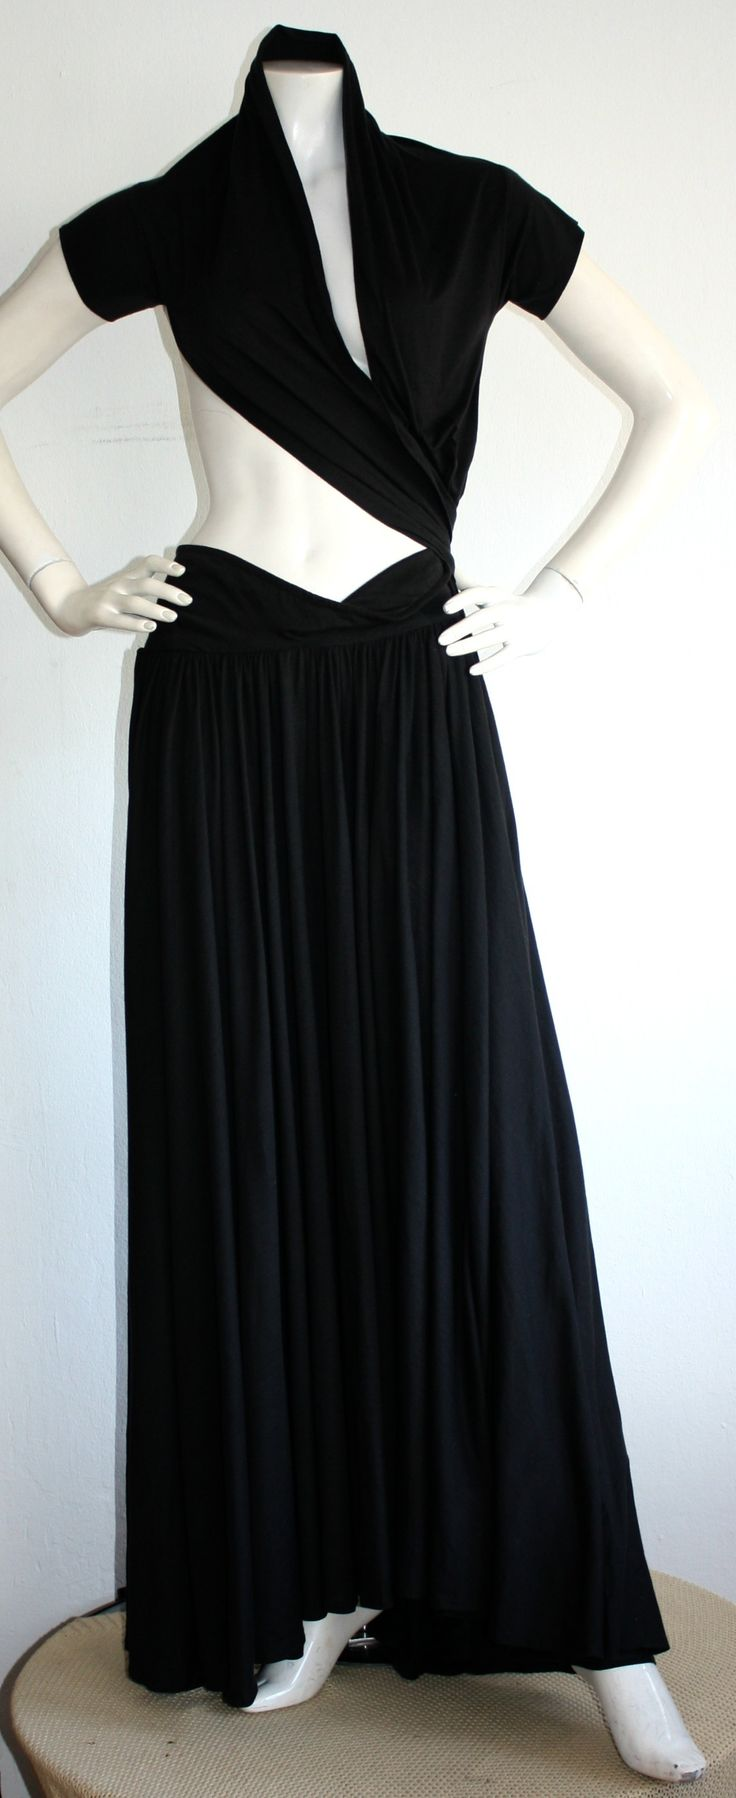 Extremely Rare Vintage Romeo Gigli Black Wrap Dress Musuem Worthy | From a collection of rare vintage evening dresses at https://www.1stdibs.com/fashion/clothing/evening-dresses/